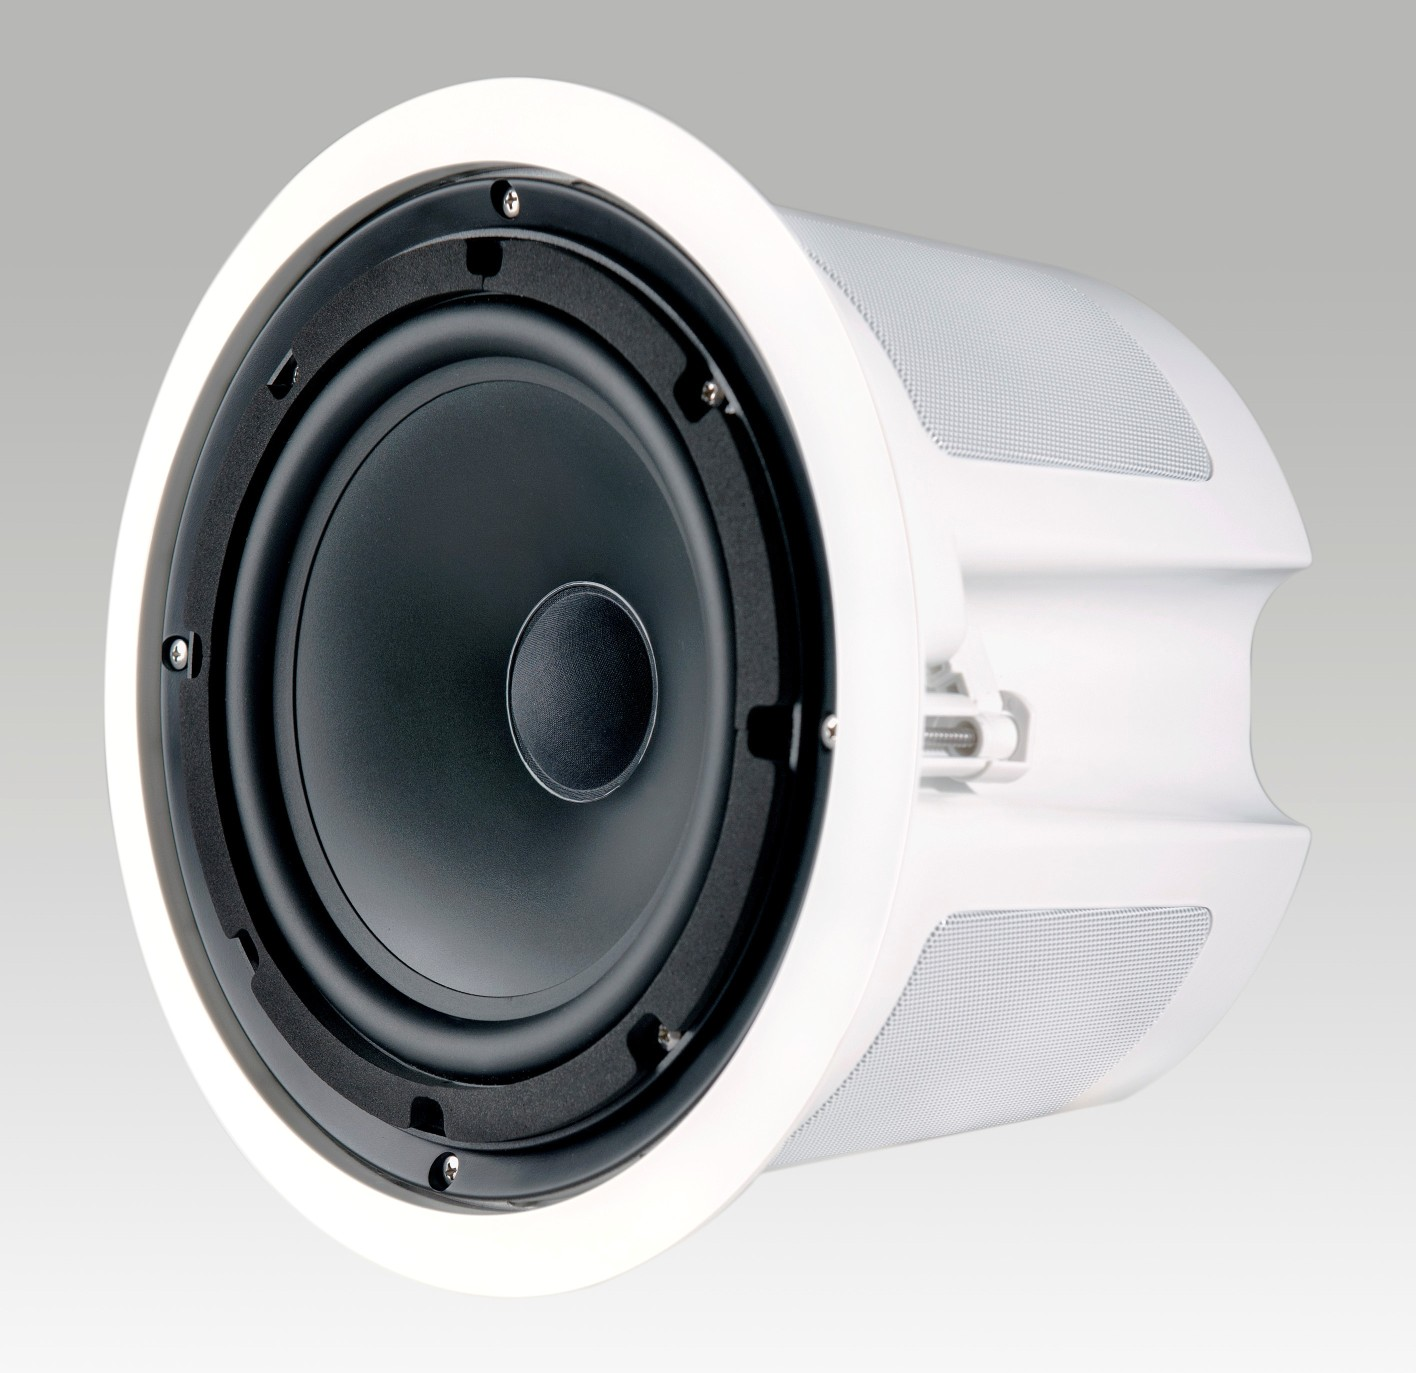 hight resolution of krix stratospherix outdoor 2 way in ceiling speaker photo with grille removed 212kb